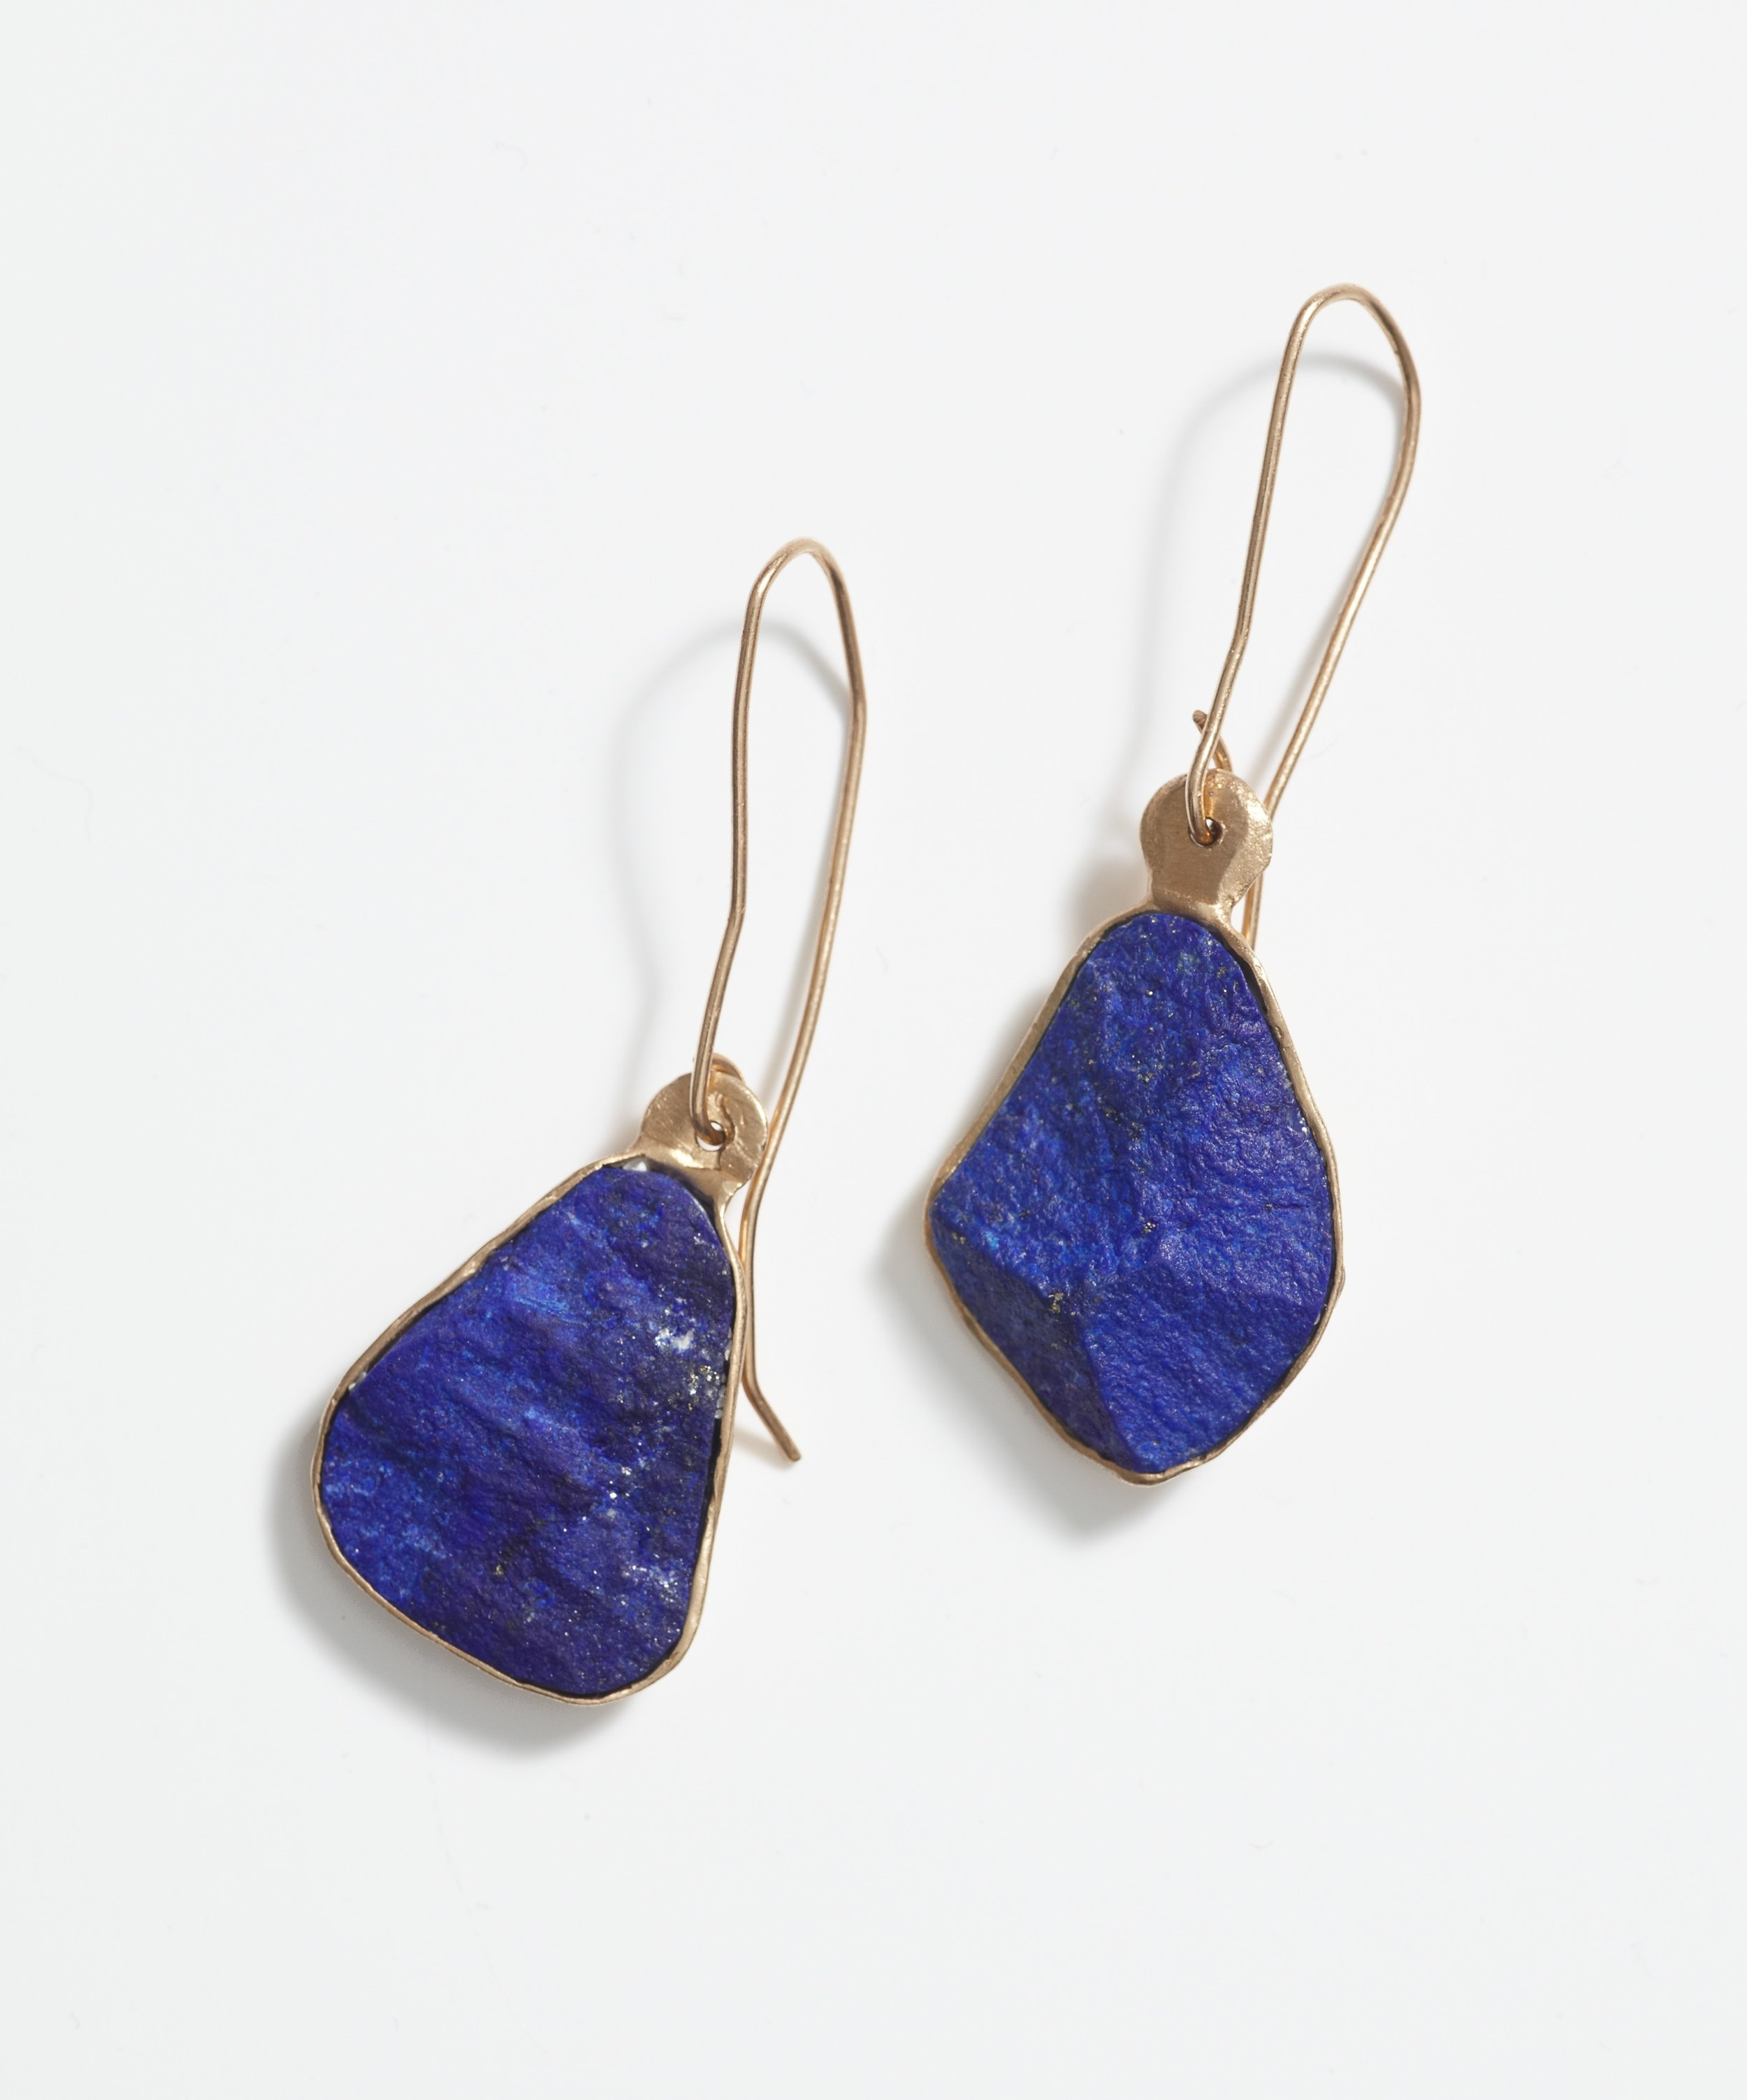 18ct Gold & Lapis Lazuli earrings by Rosy Gounaris Milner at  Beyond the Blue